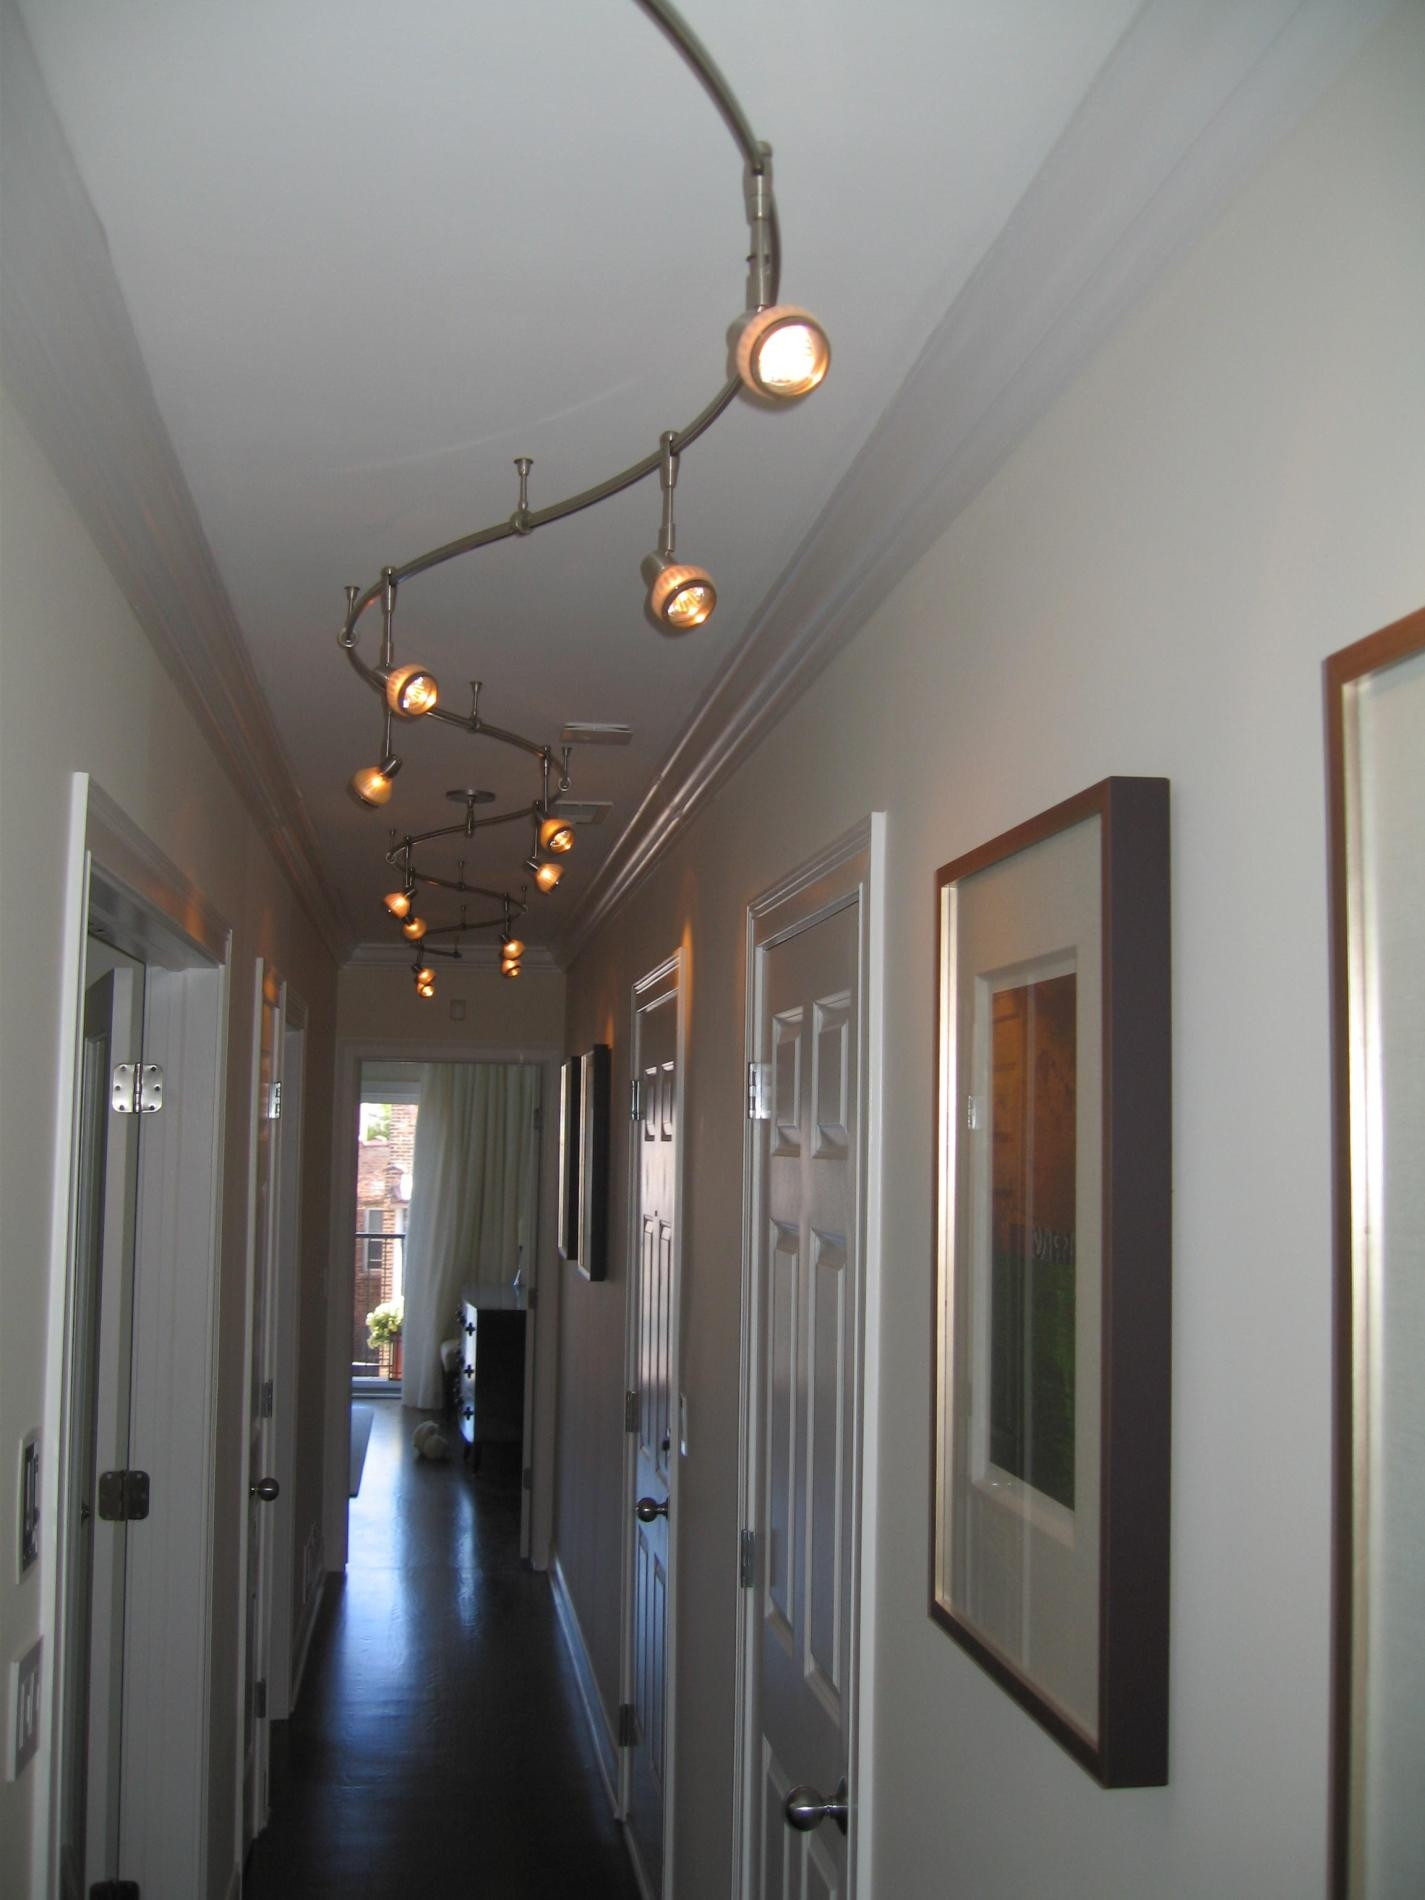 Interior Foyer Light With Black Copper Glass Lantern Chandelier Intended For Small Hallway Chandeliers (Image 10 of 15)